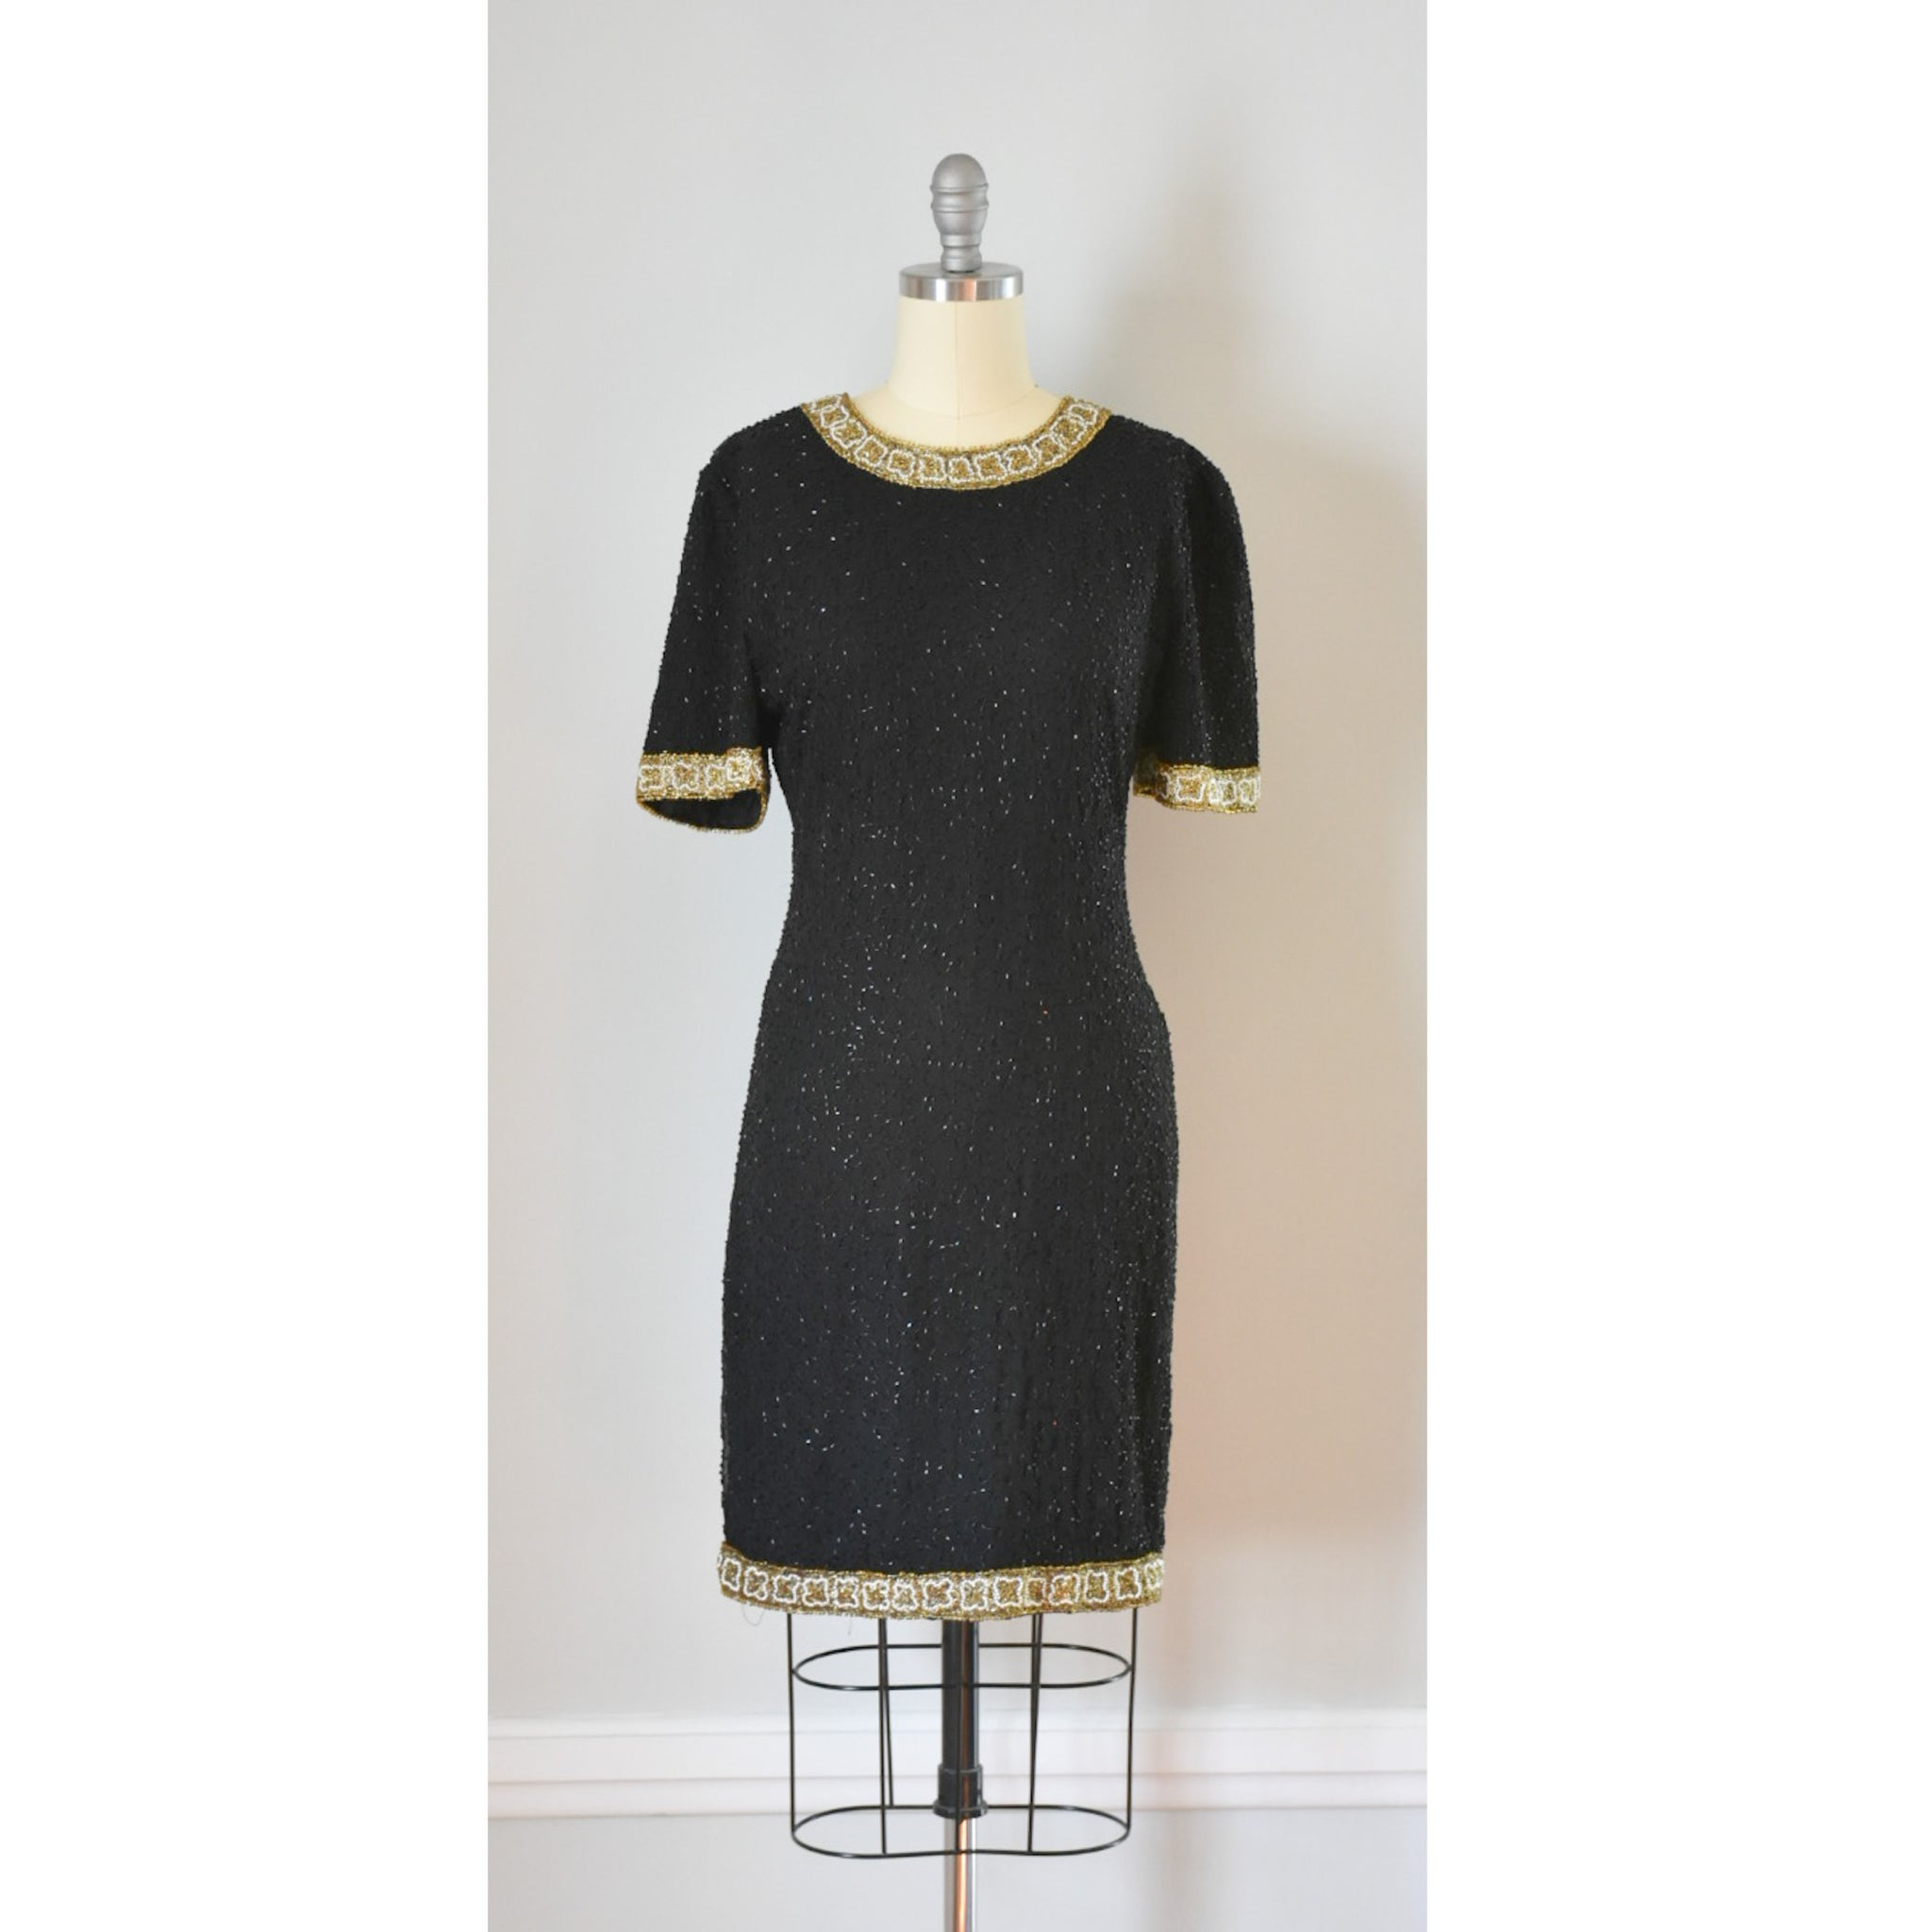 Vintage Laurence Kazar Dress from DuncanLovesTess.com